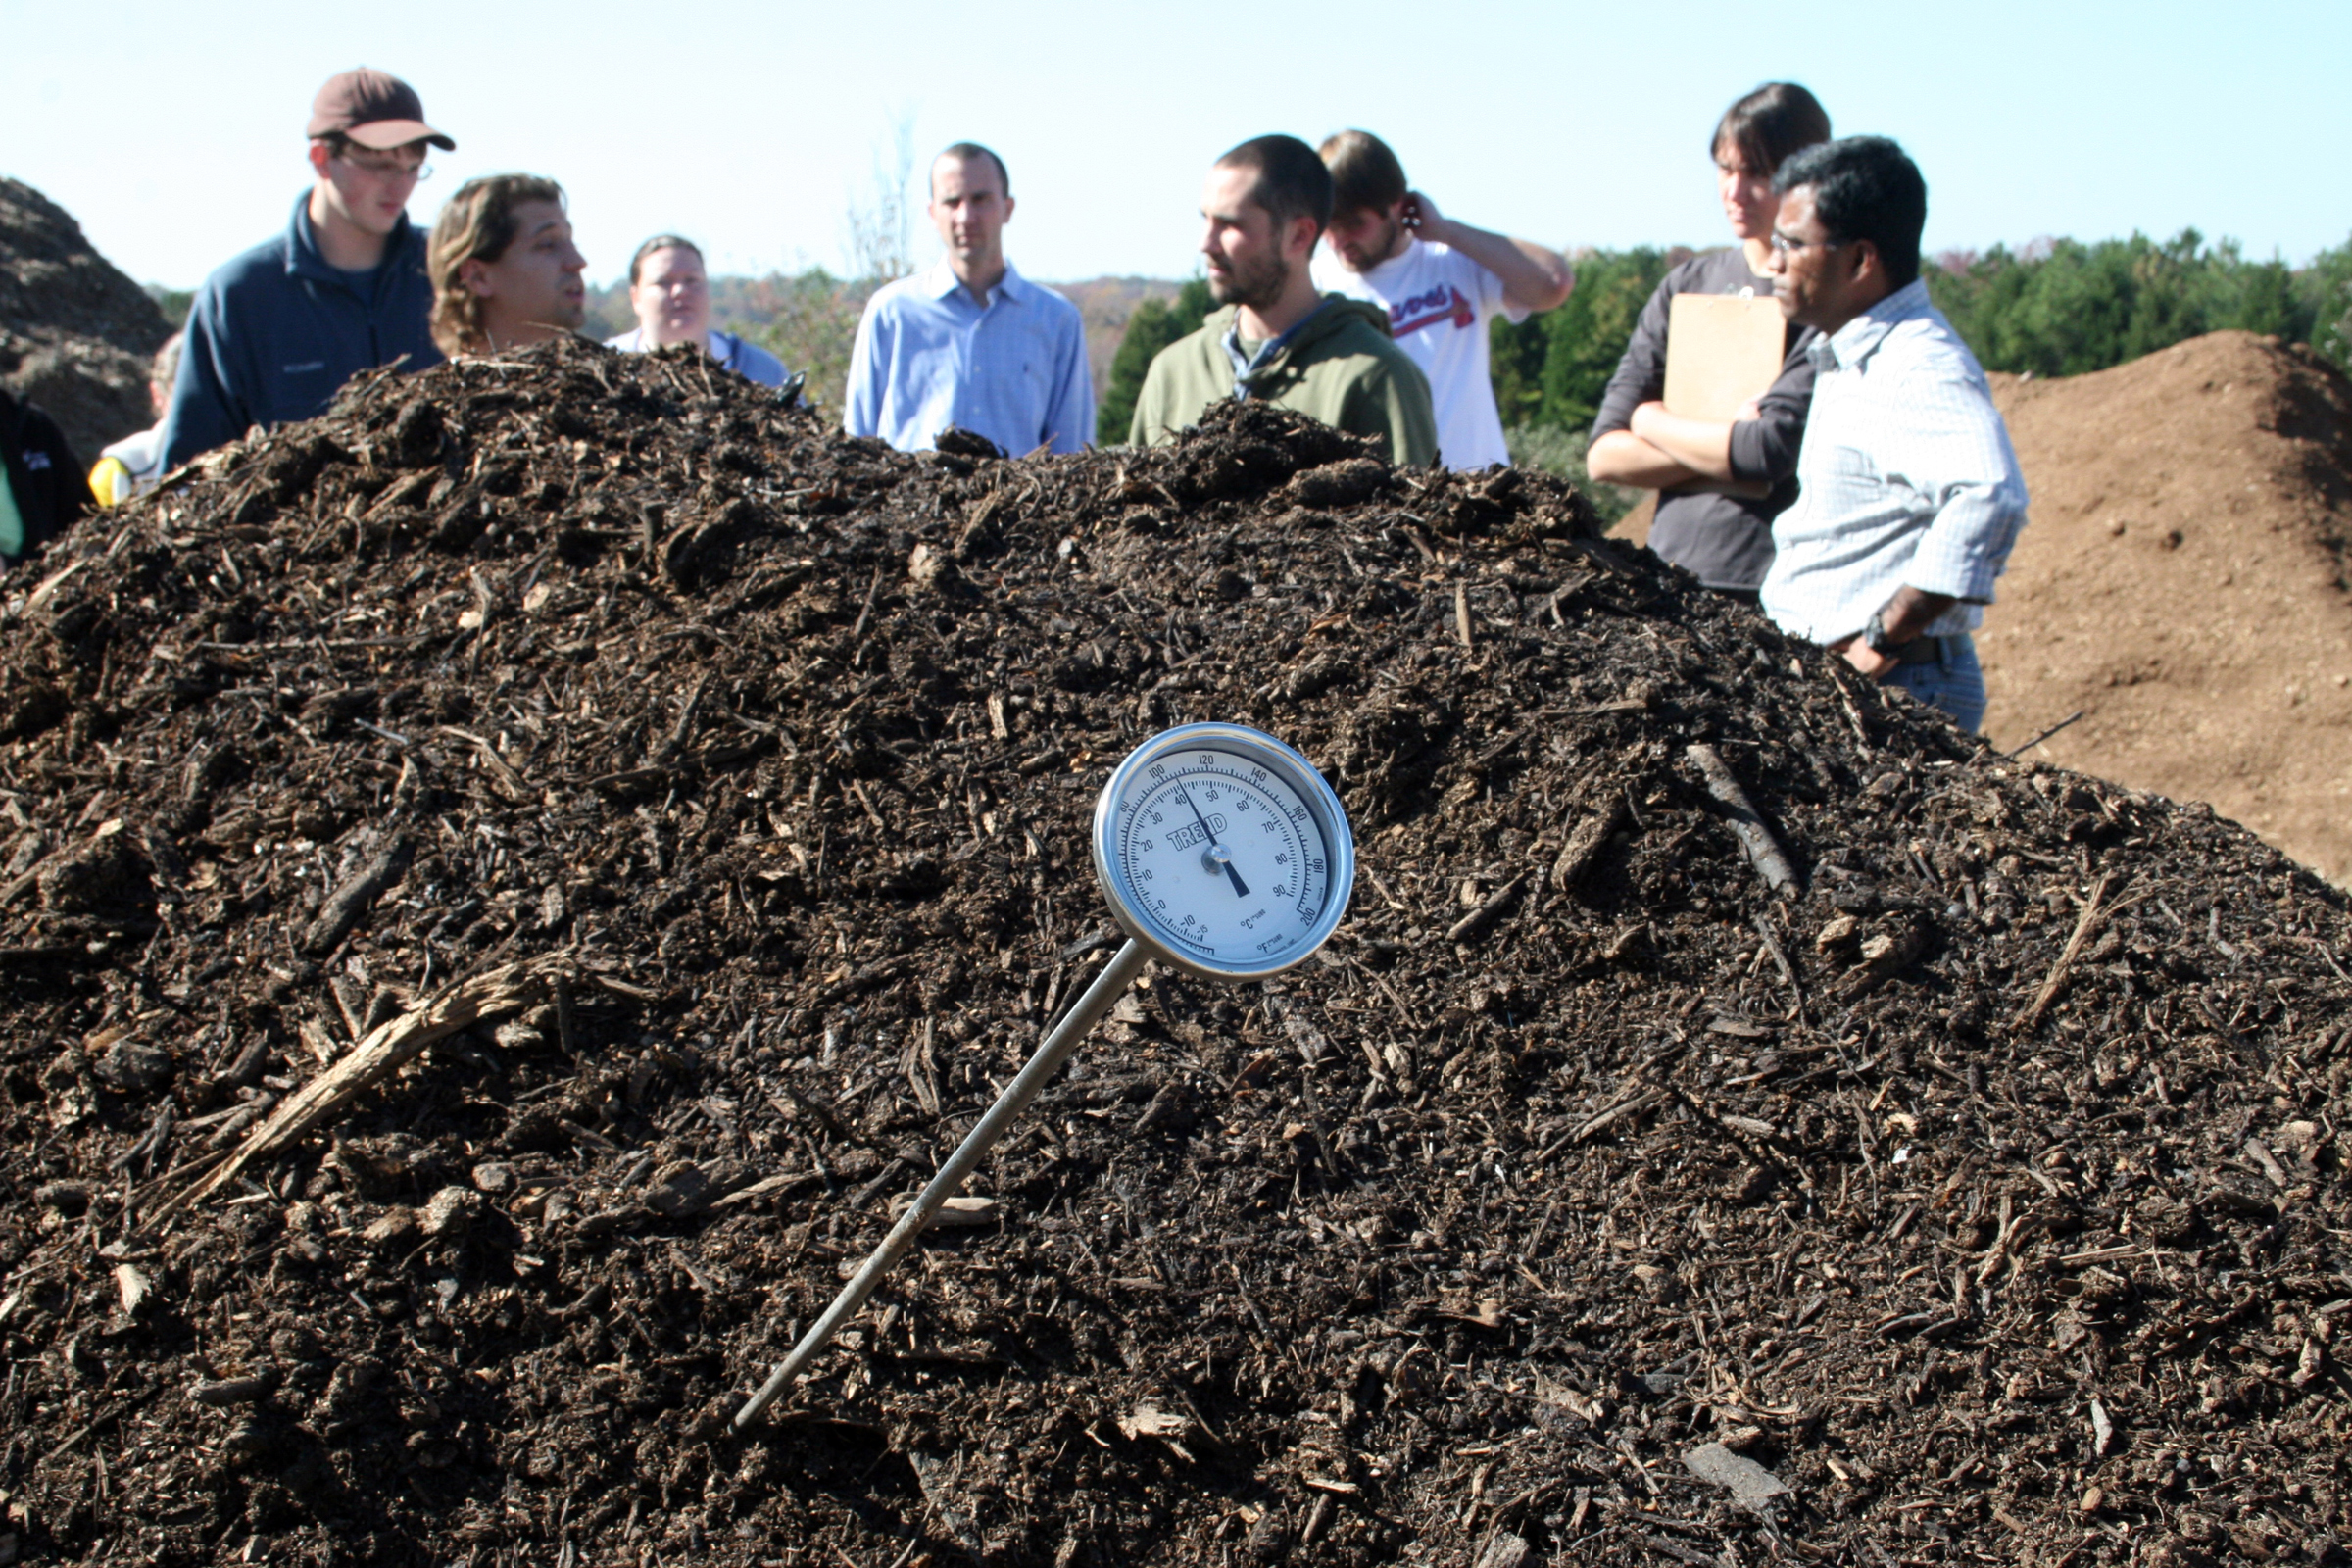 Compost adds organic matter to the soil, helping plants grow and saving landfill space.